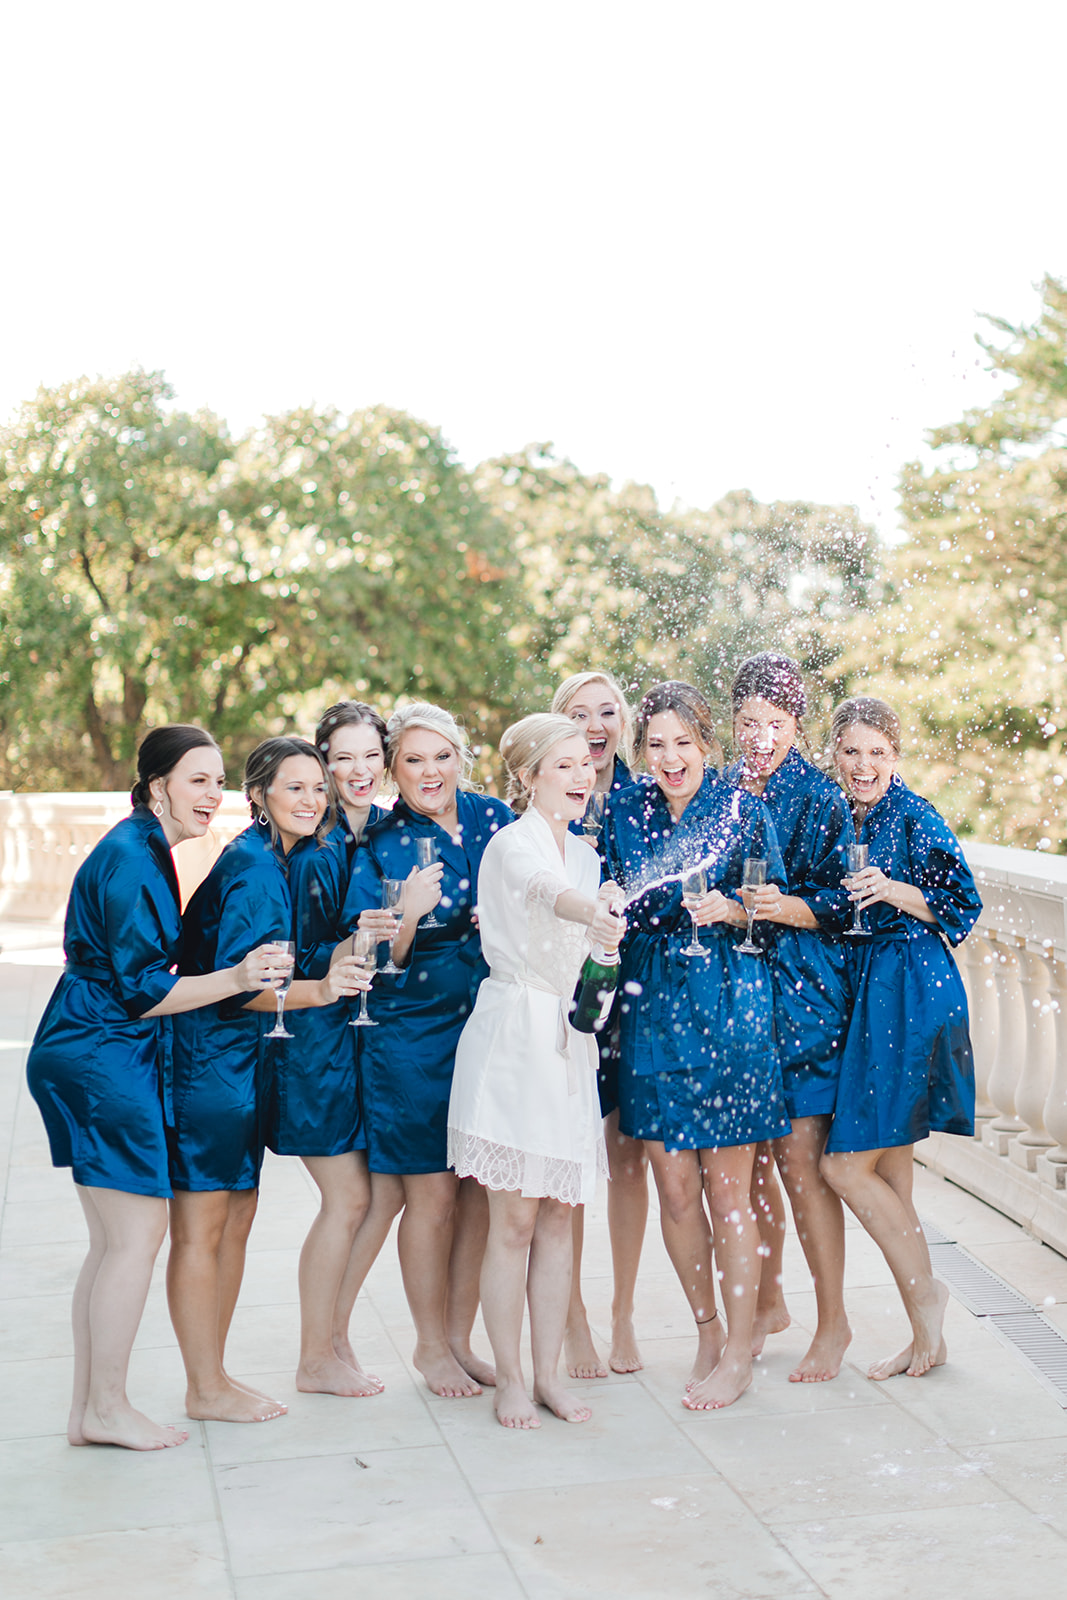 Bridal party photography: Timeless Wedding at The Olana featured on Alexa Kay Events!